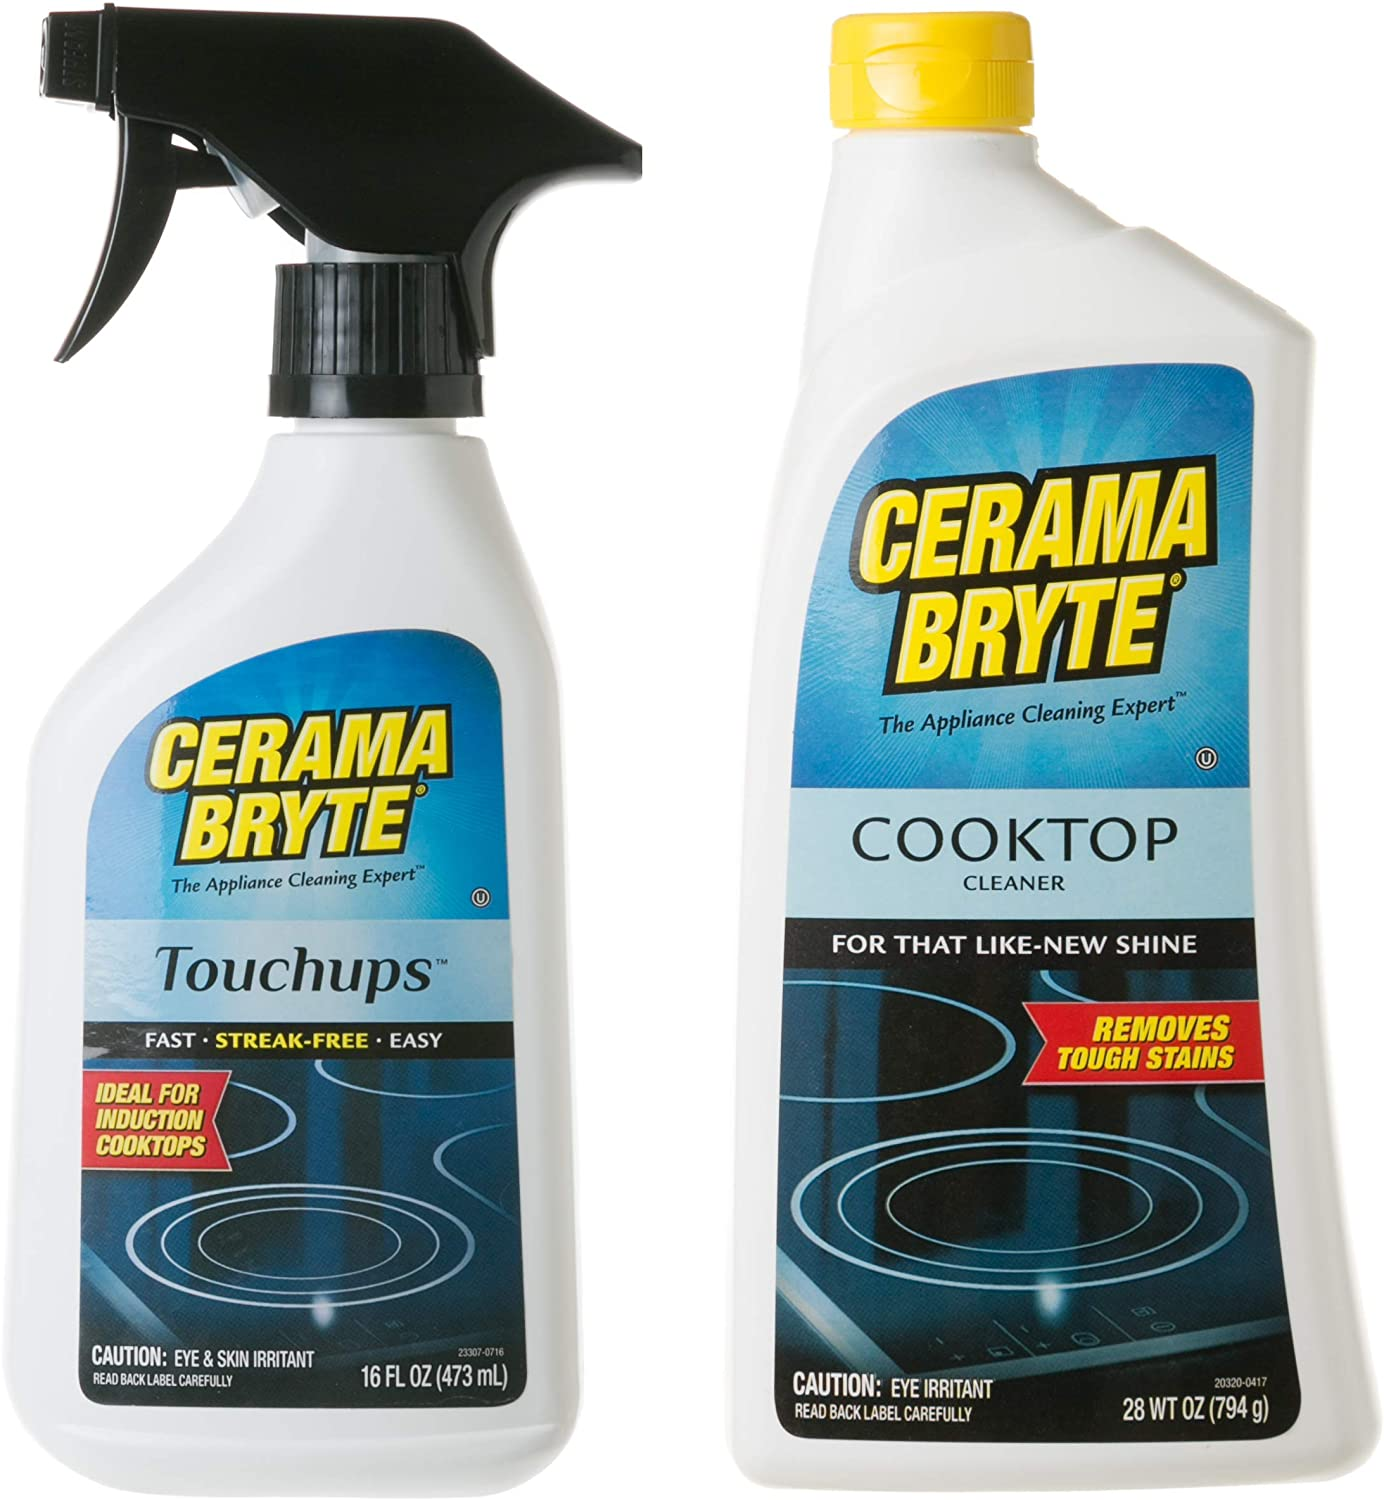 Cerama Bryte Glass-Ceramic Cooktop Cleaning Combo - Cooktop Cleaner (28 oz), with Touchups Spray (16 oz)